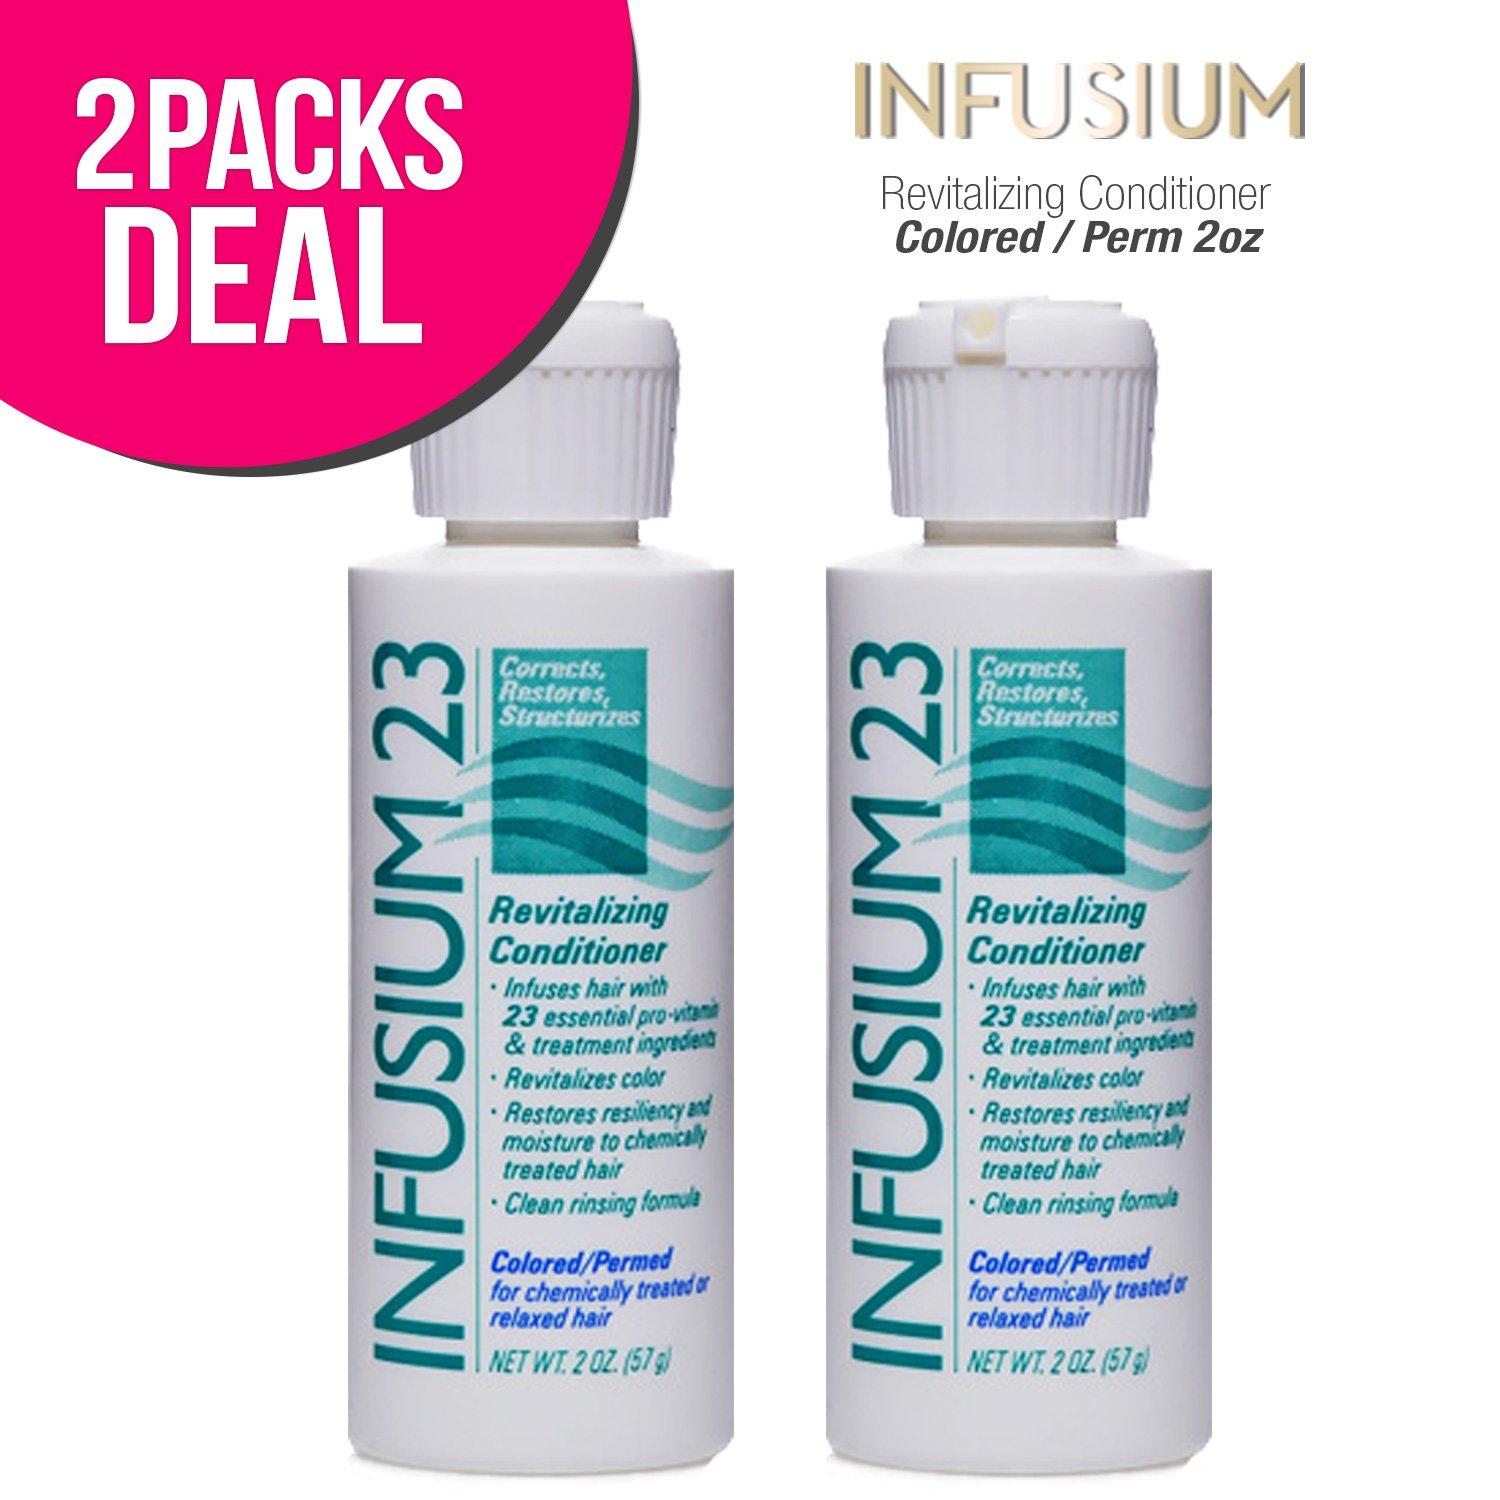 (2 PACK) INFUSIUM 23 Revitalizing Conditioner-Colored/Permed 2oz